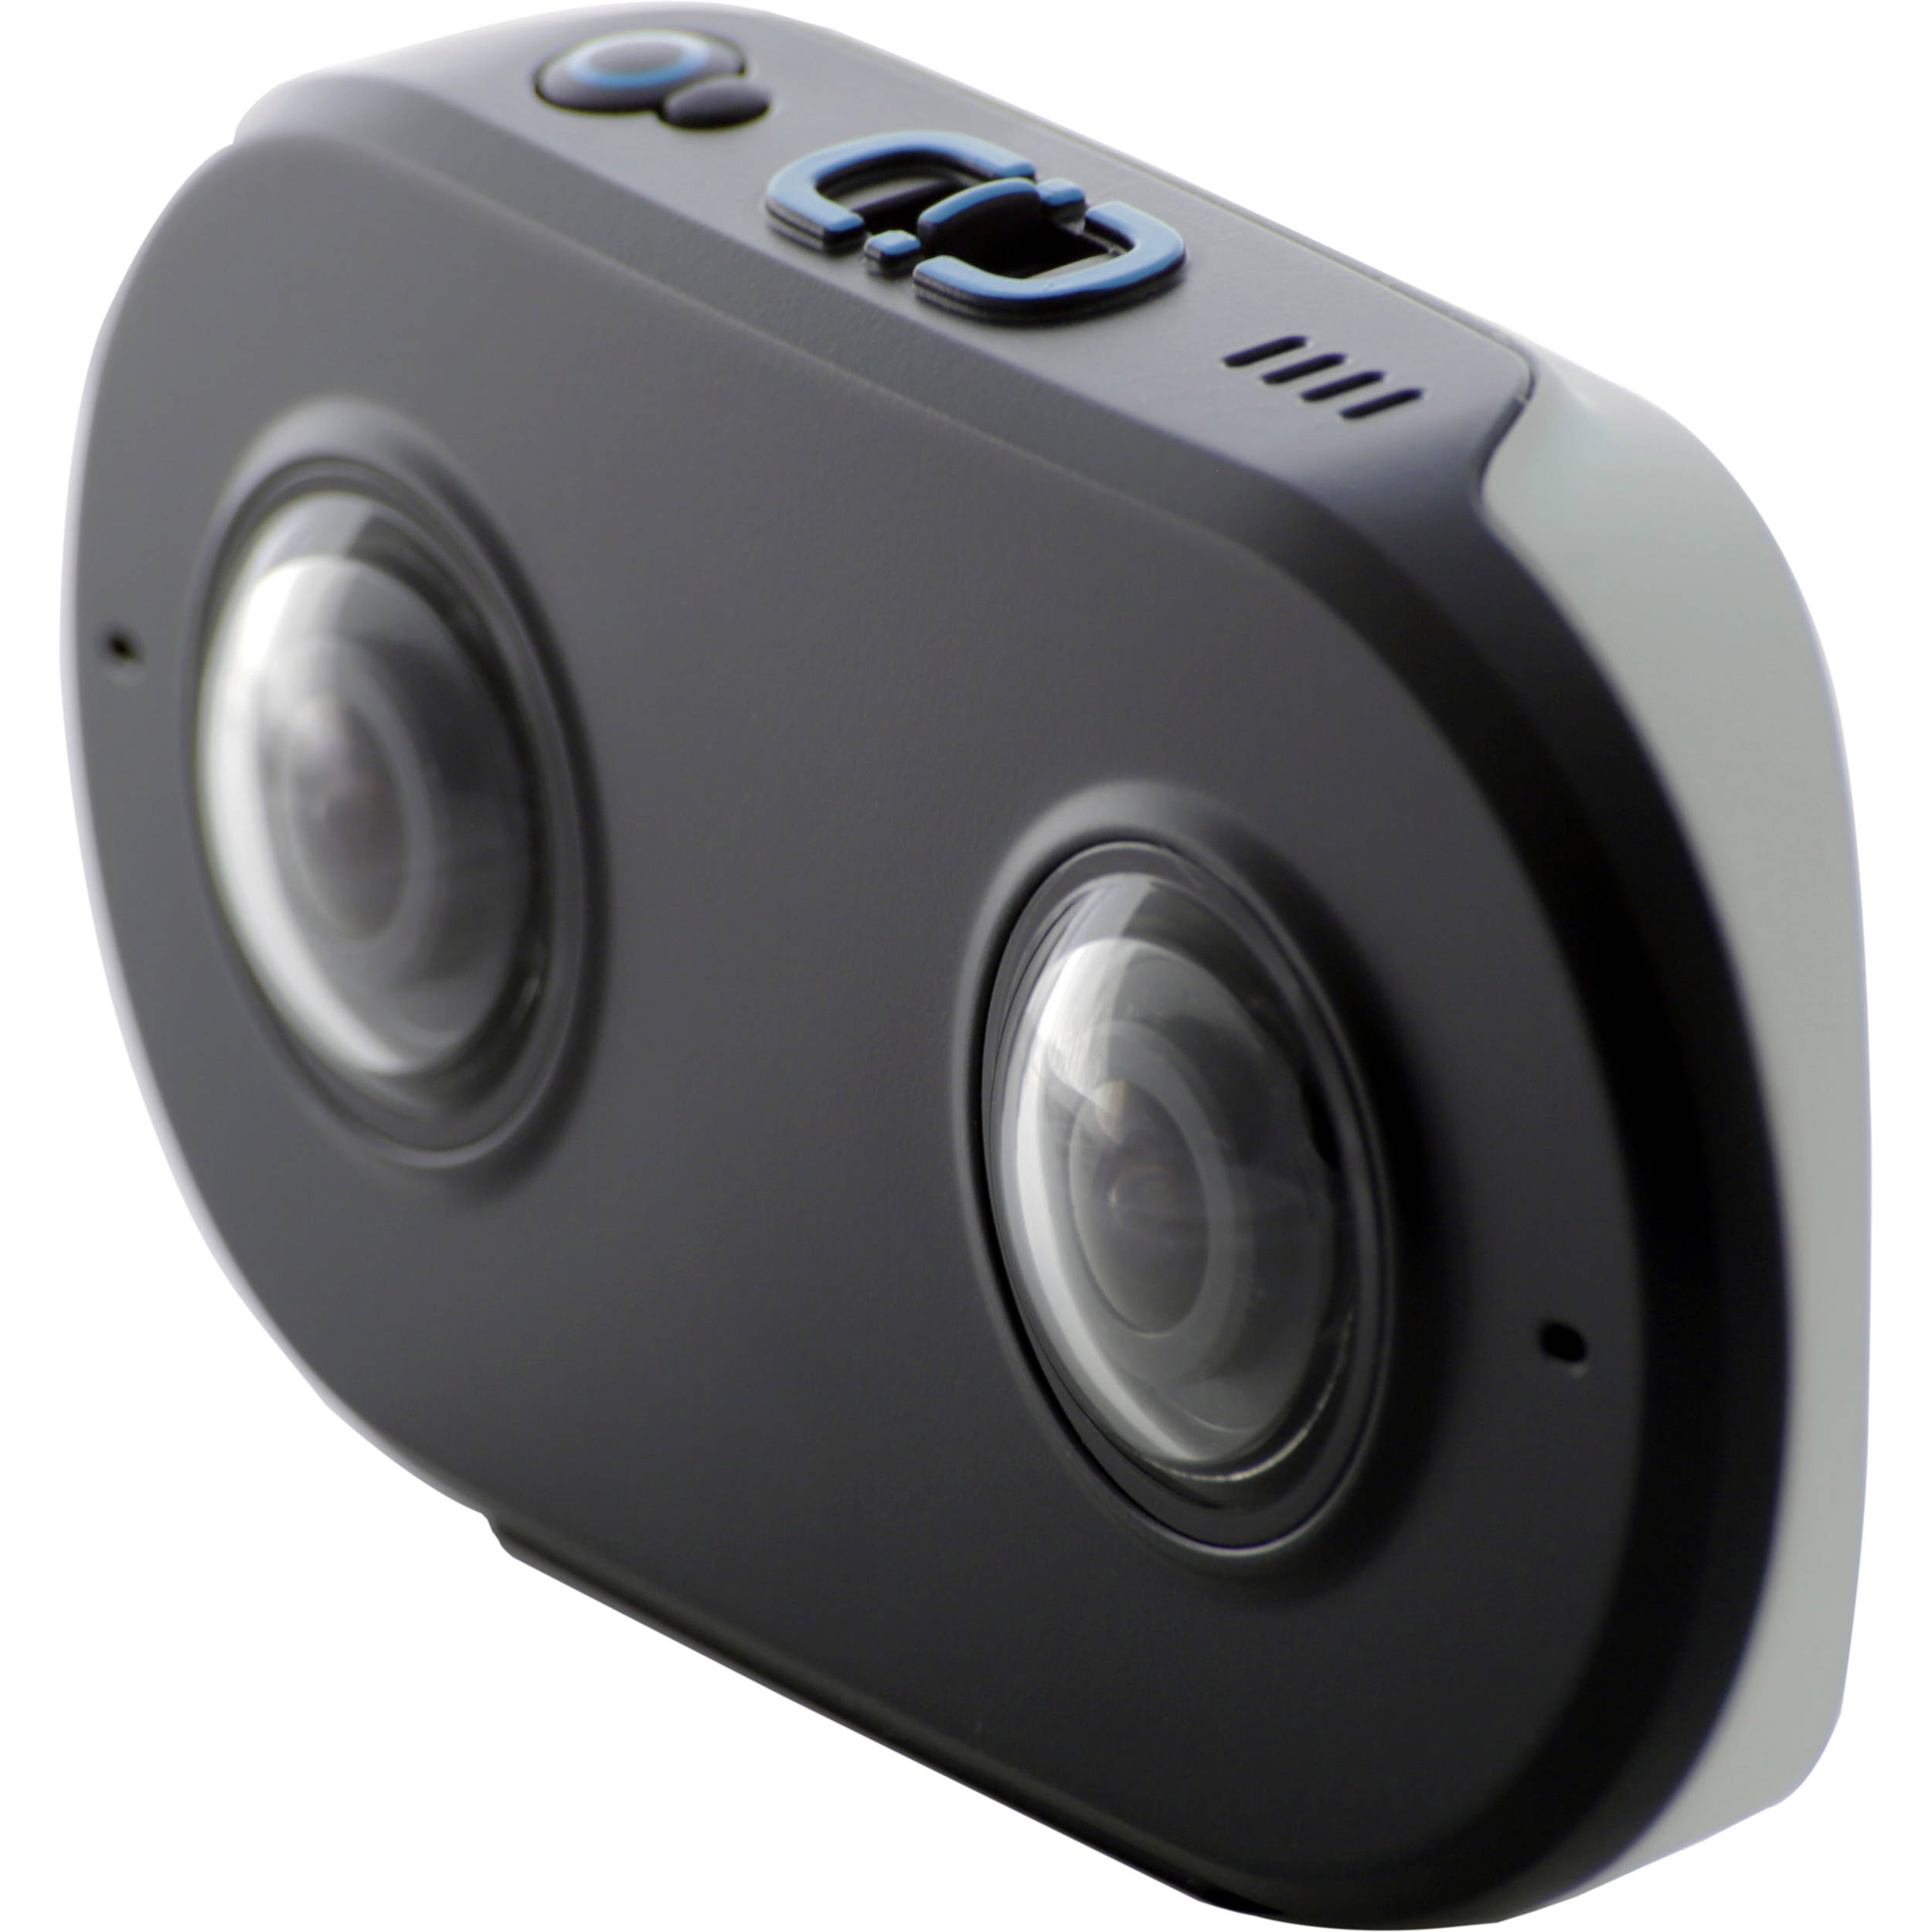 Lucid LucidCam Stereoscopic 3D Point and Shoot Camera LUCVR3D